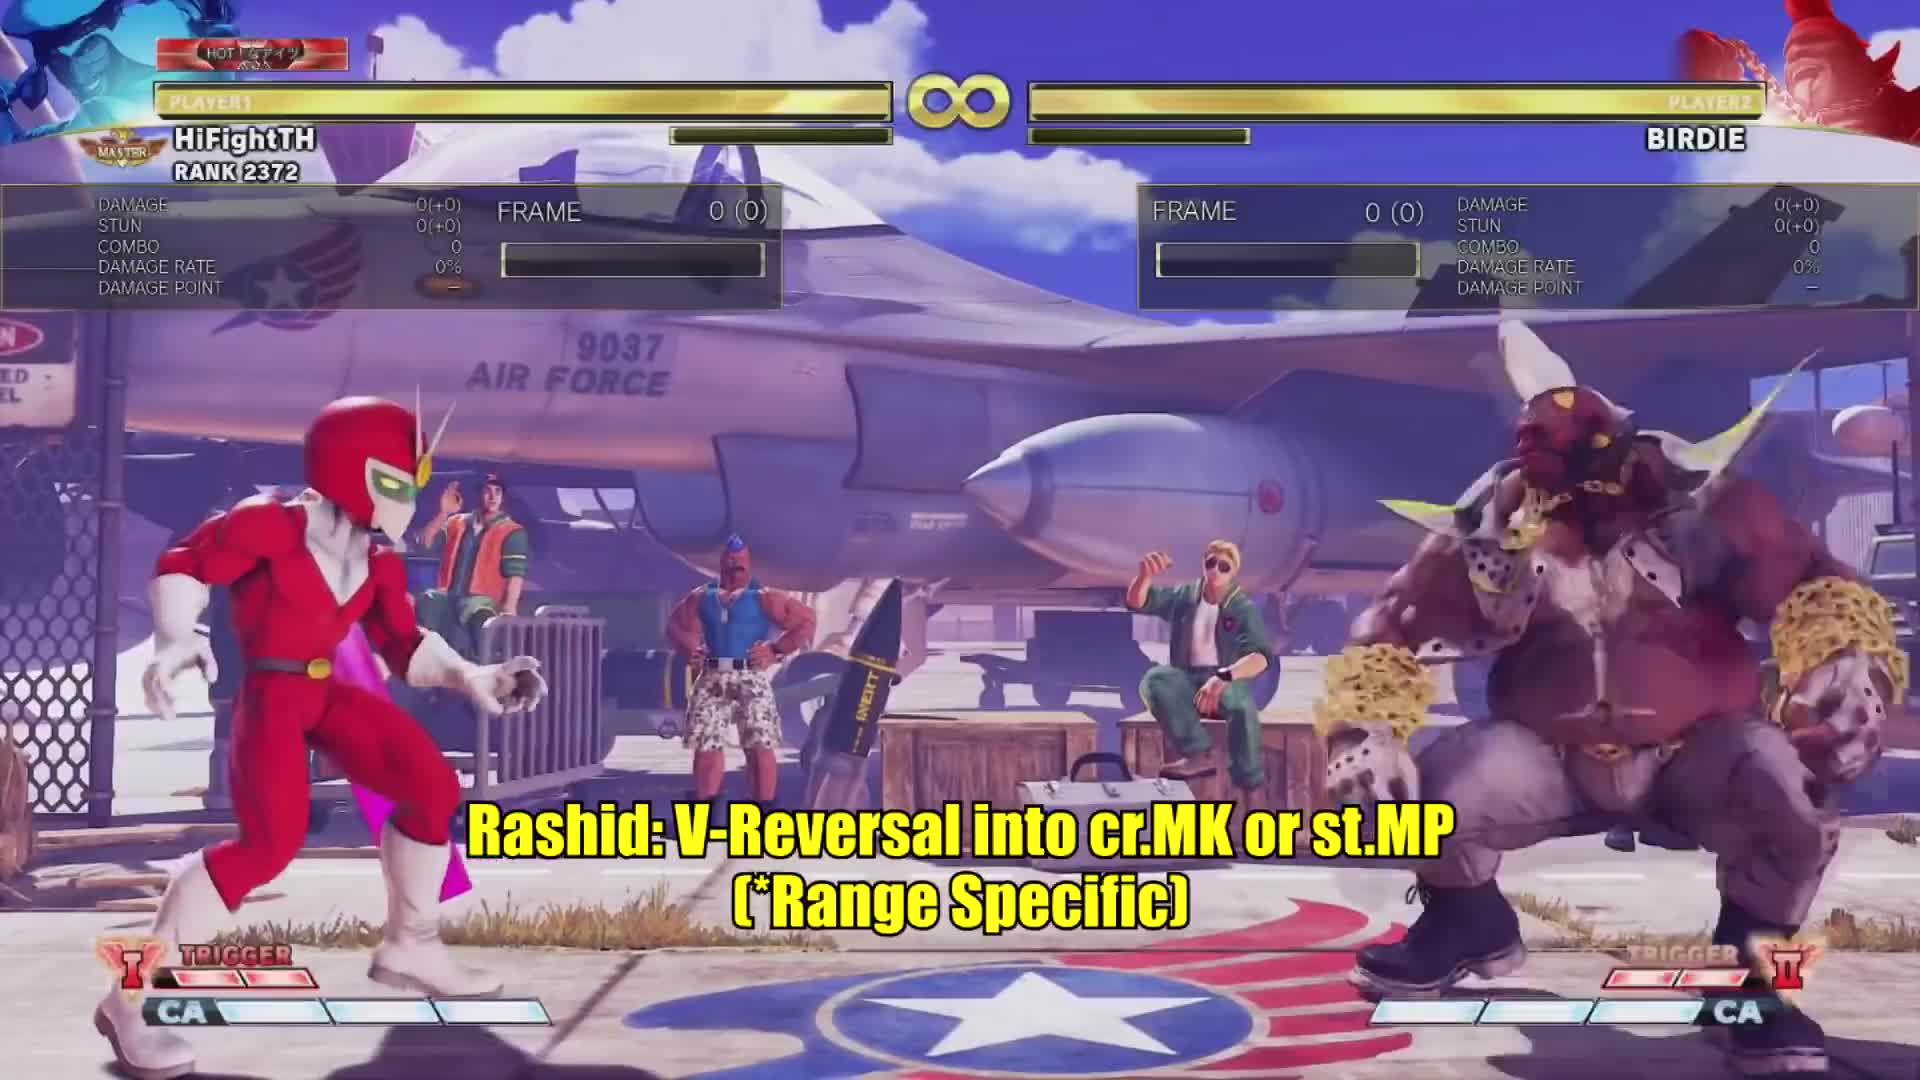 birdie, gaming, hifight, hifightth, sfv, street fighter v, Birdie EX Bull Head VT2 Activation Punish (All Characters) GIFs